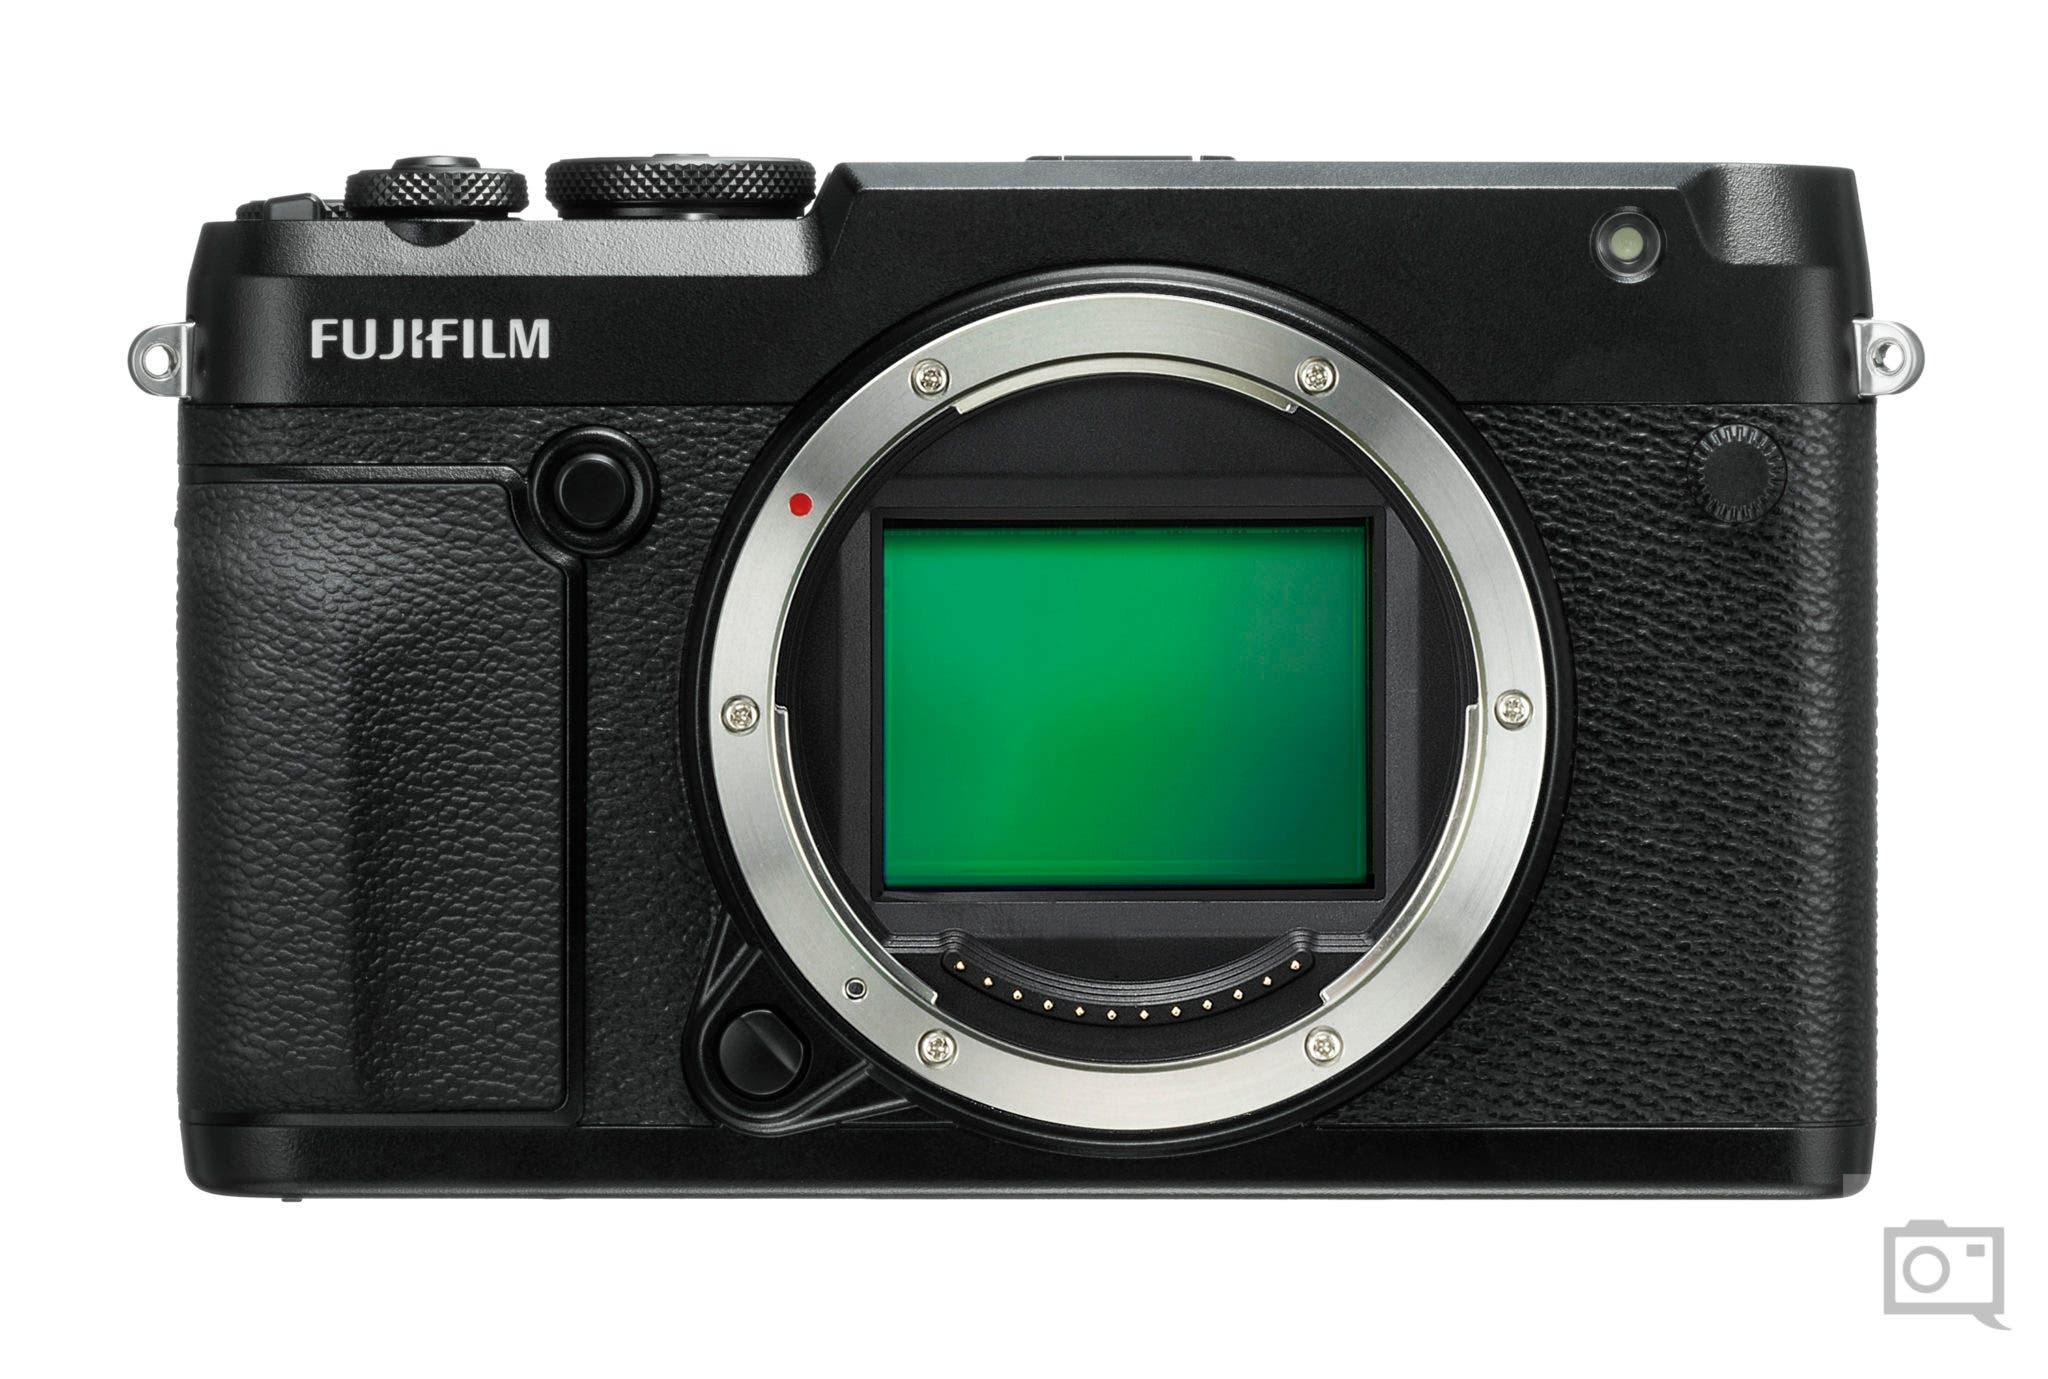 The Fujifilm GFX 50R is the Rangefinder Style Camera We Wanted